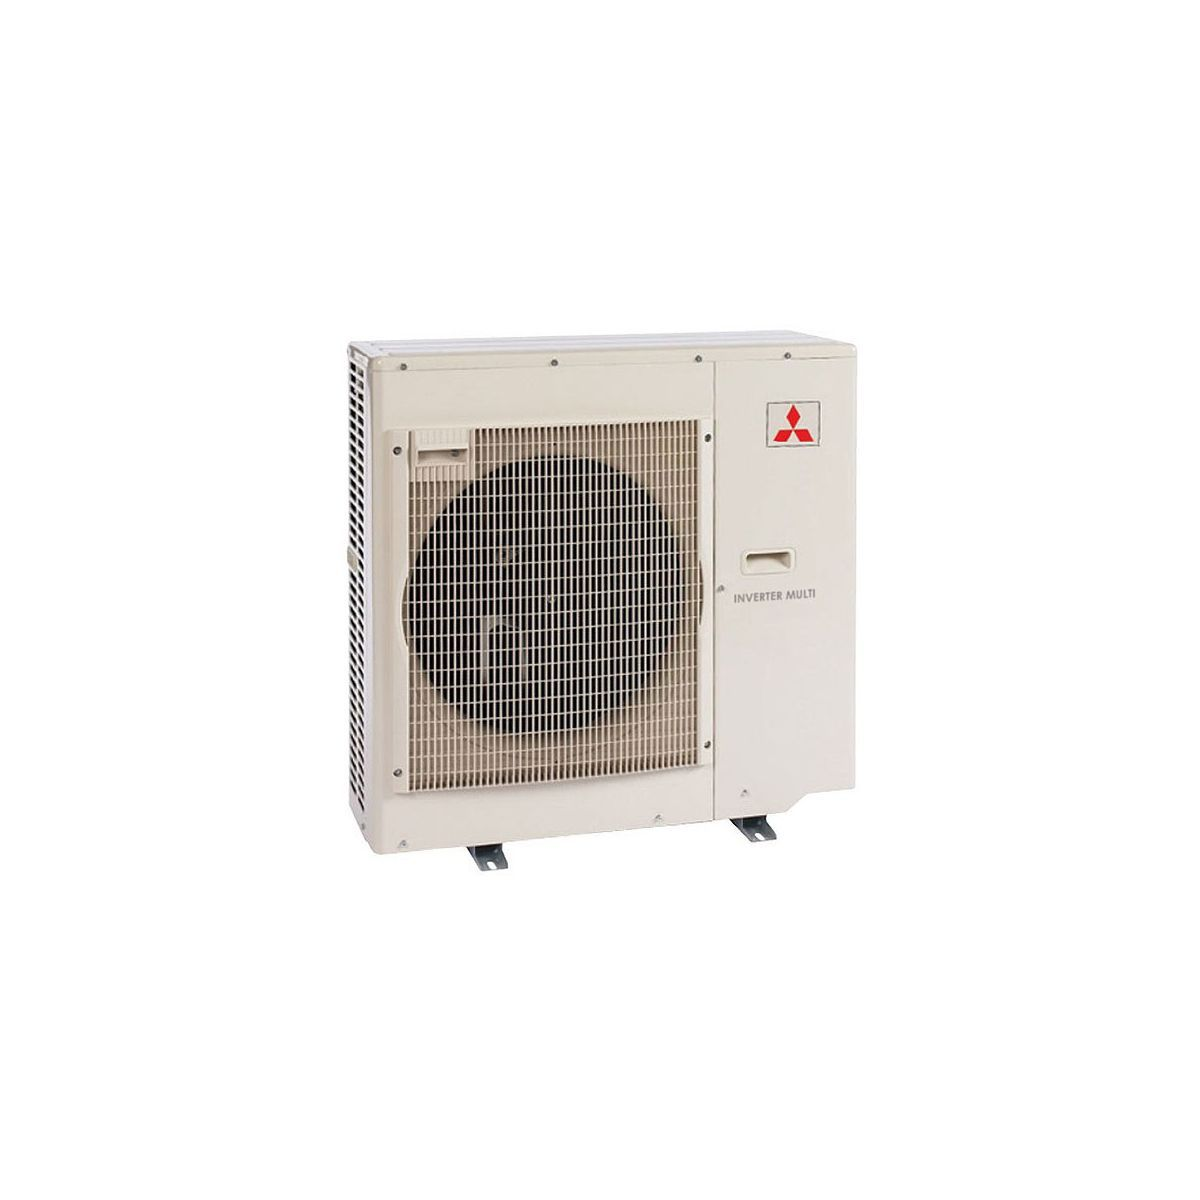 #B4171B Mitsubishi Ductless Wiring Diagram Most Effective 5435 Mitsubishi Mini Split Ac Units pictures with 1200x1200 px on helpvideos.info - Air Conditioners, Air Coolers and more